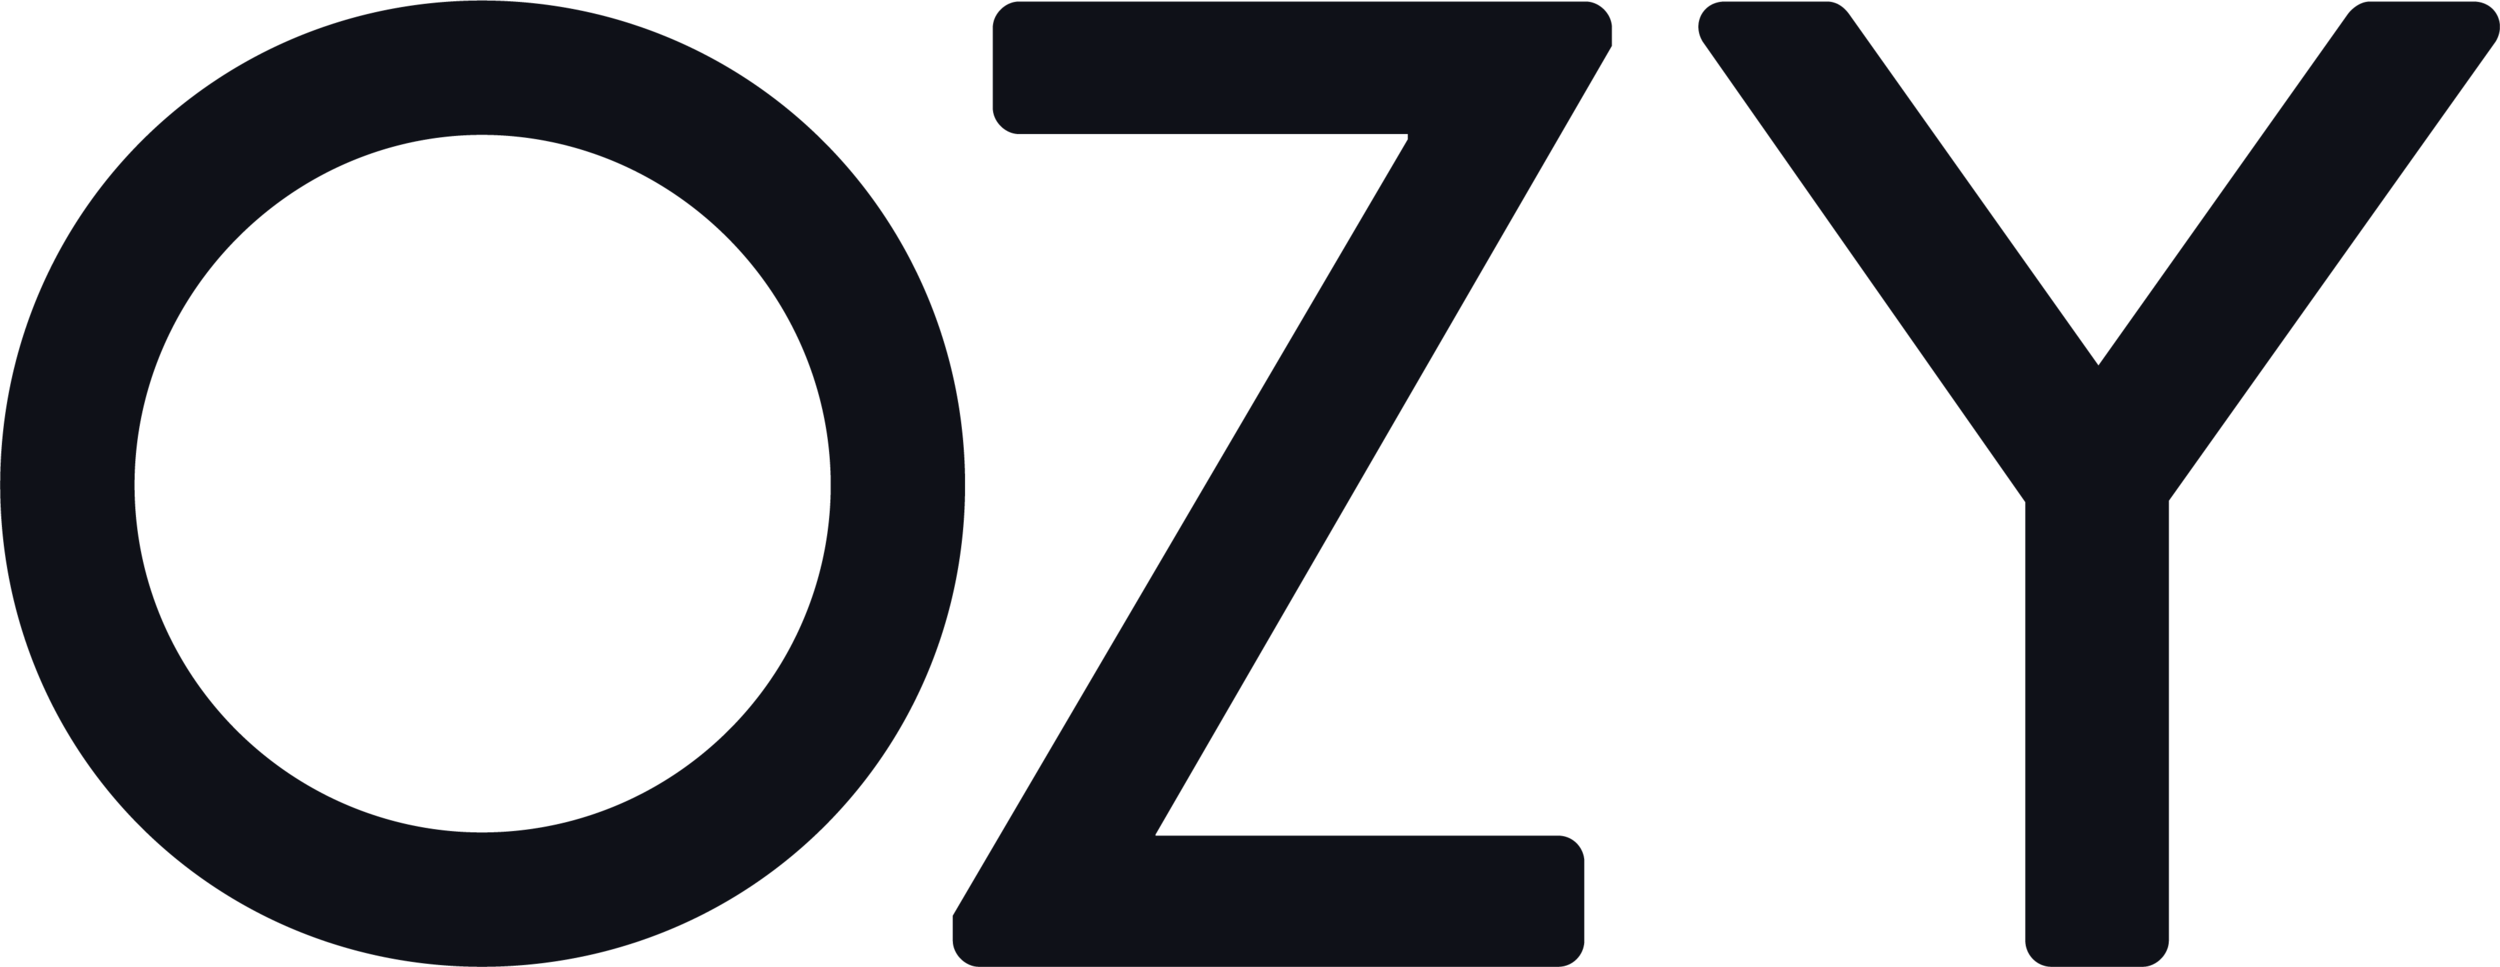 OZYlogo-BlackOnWhite.png